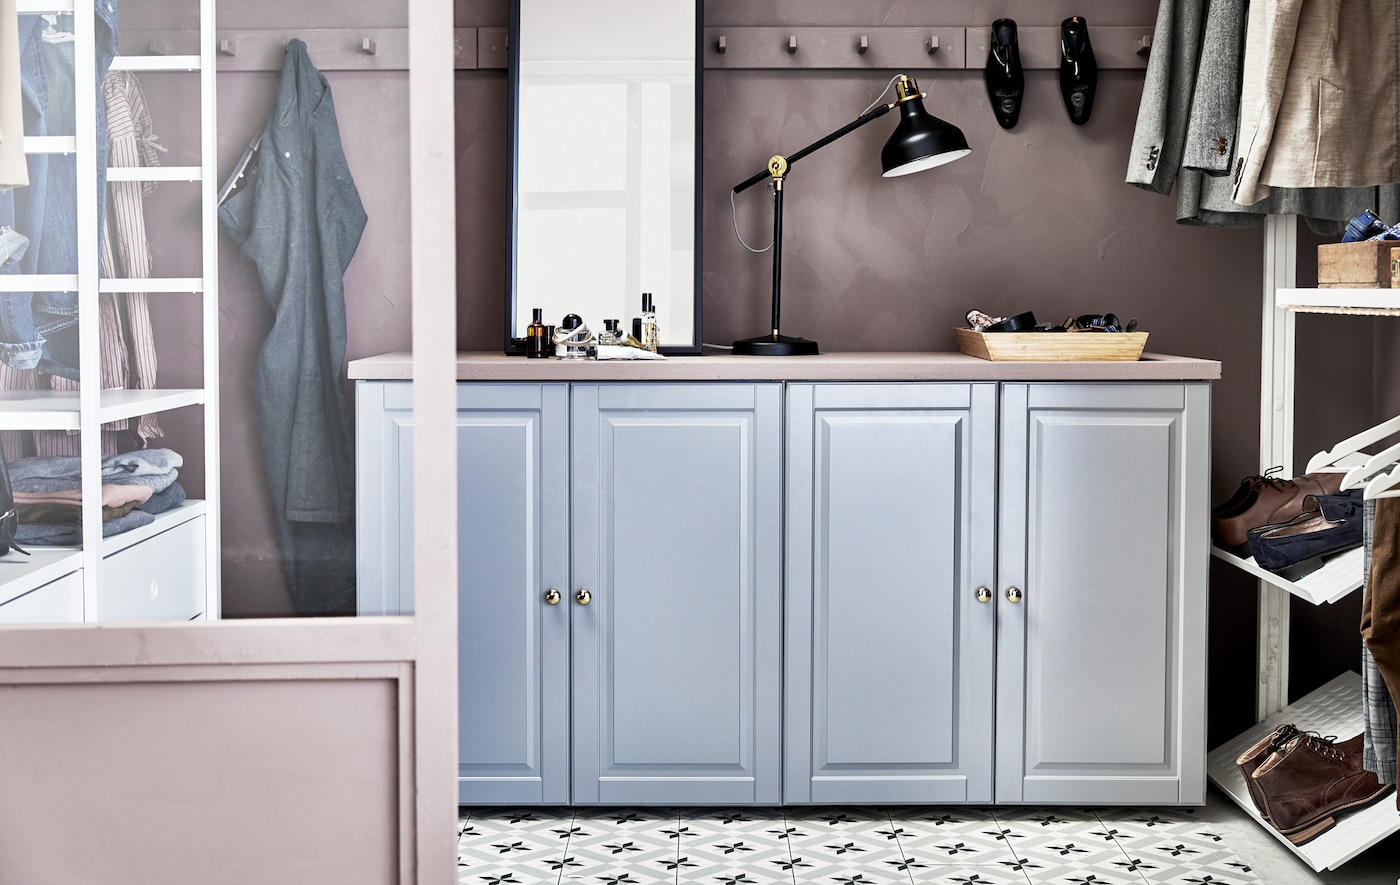 METOD is a do-anything, go-anywhere kitchen that lets you create literally thousands of different combinations. Here we used a cabinet as storage in a walk-in closet.